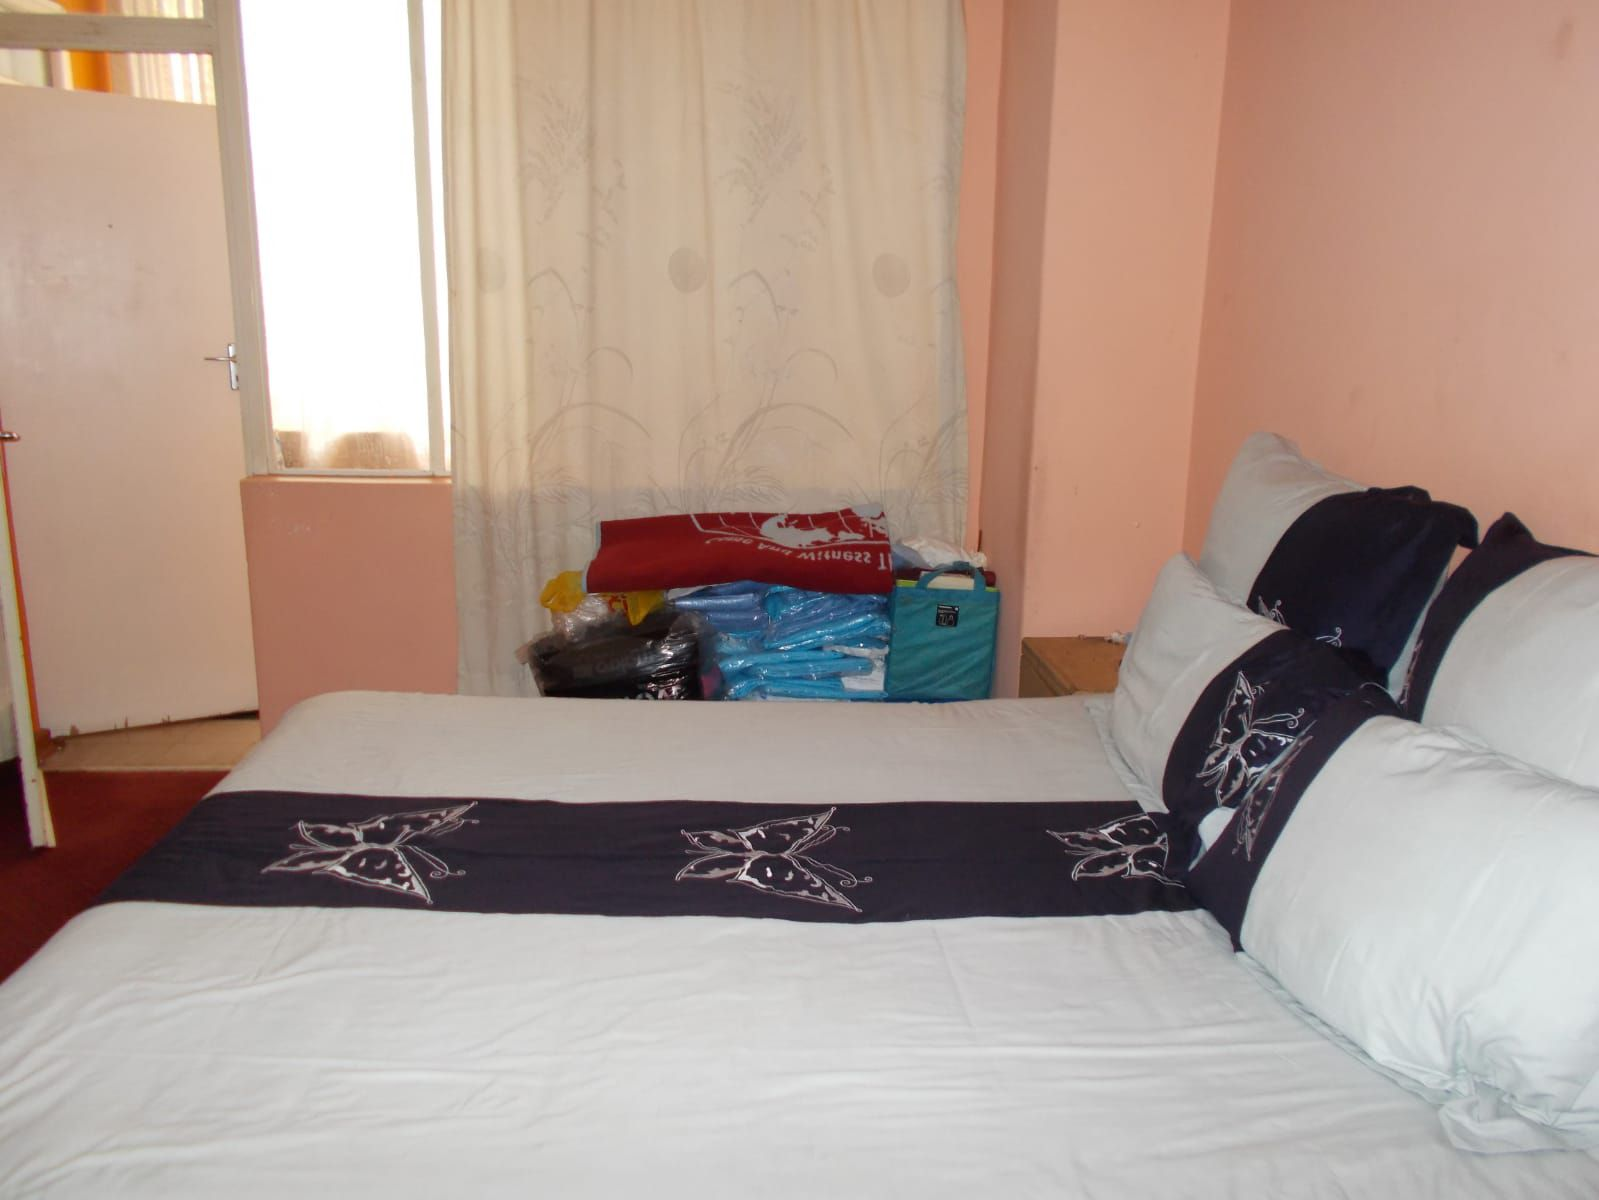 Apartment in Hillbrow - WhatsApp Image 2021-01-12 at 13.04.41 (2).jpeg